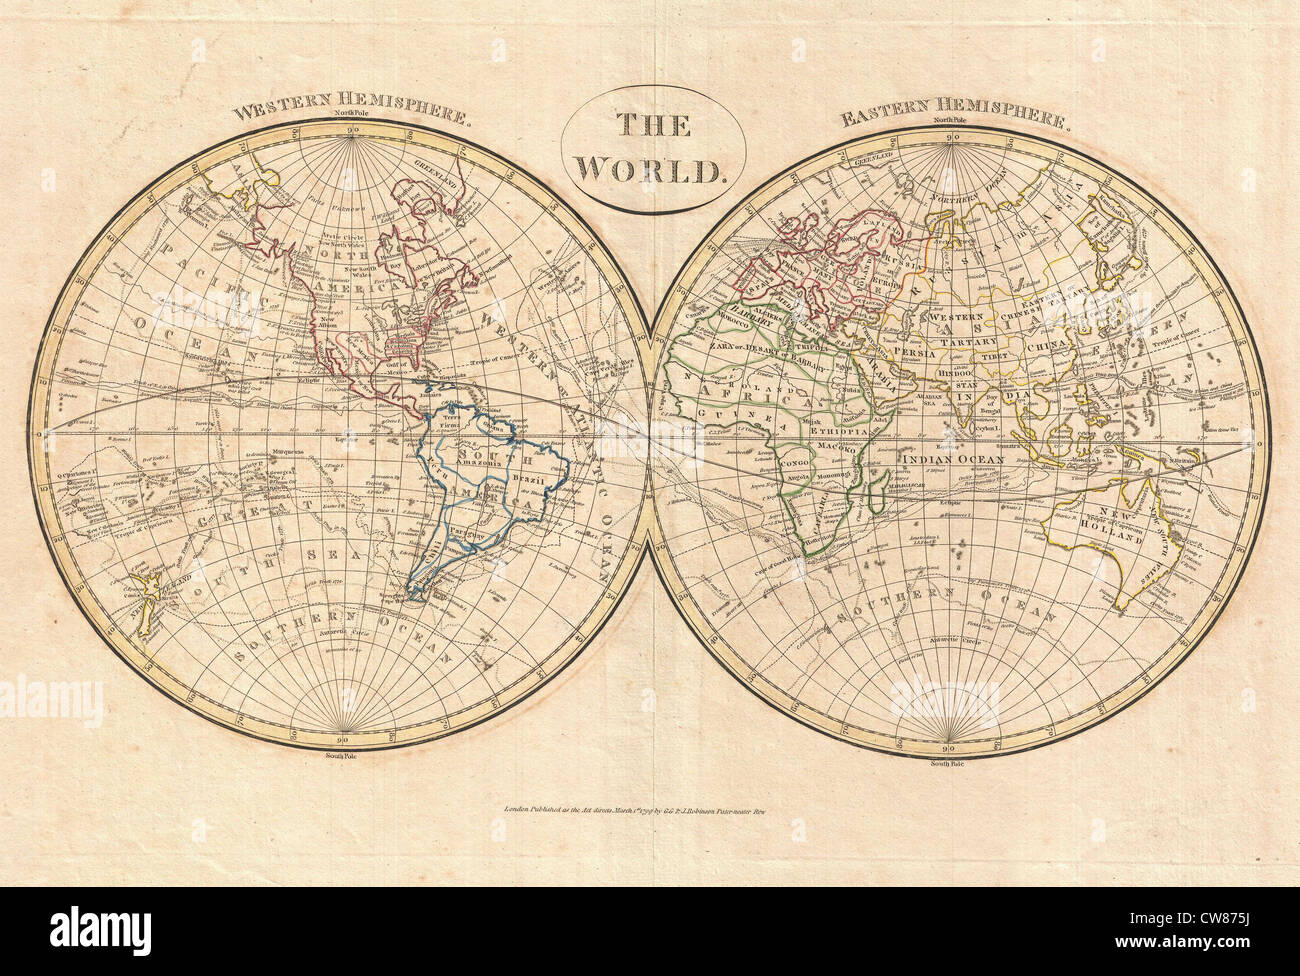 1799 Cruttwell Map of the World in Hemispheres - Stock Photo